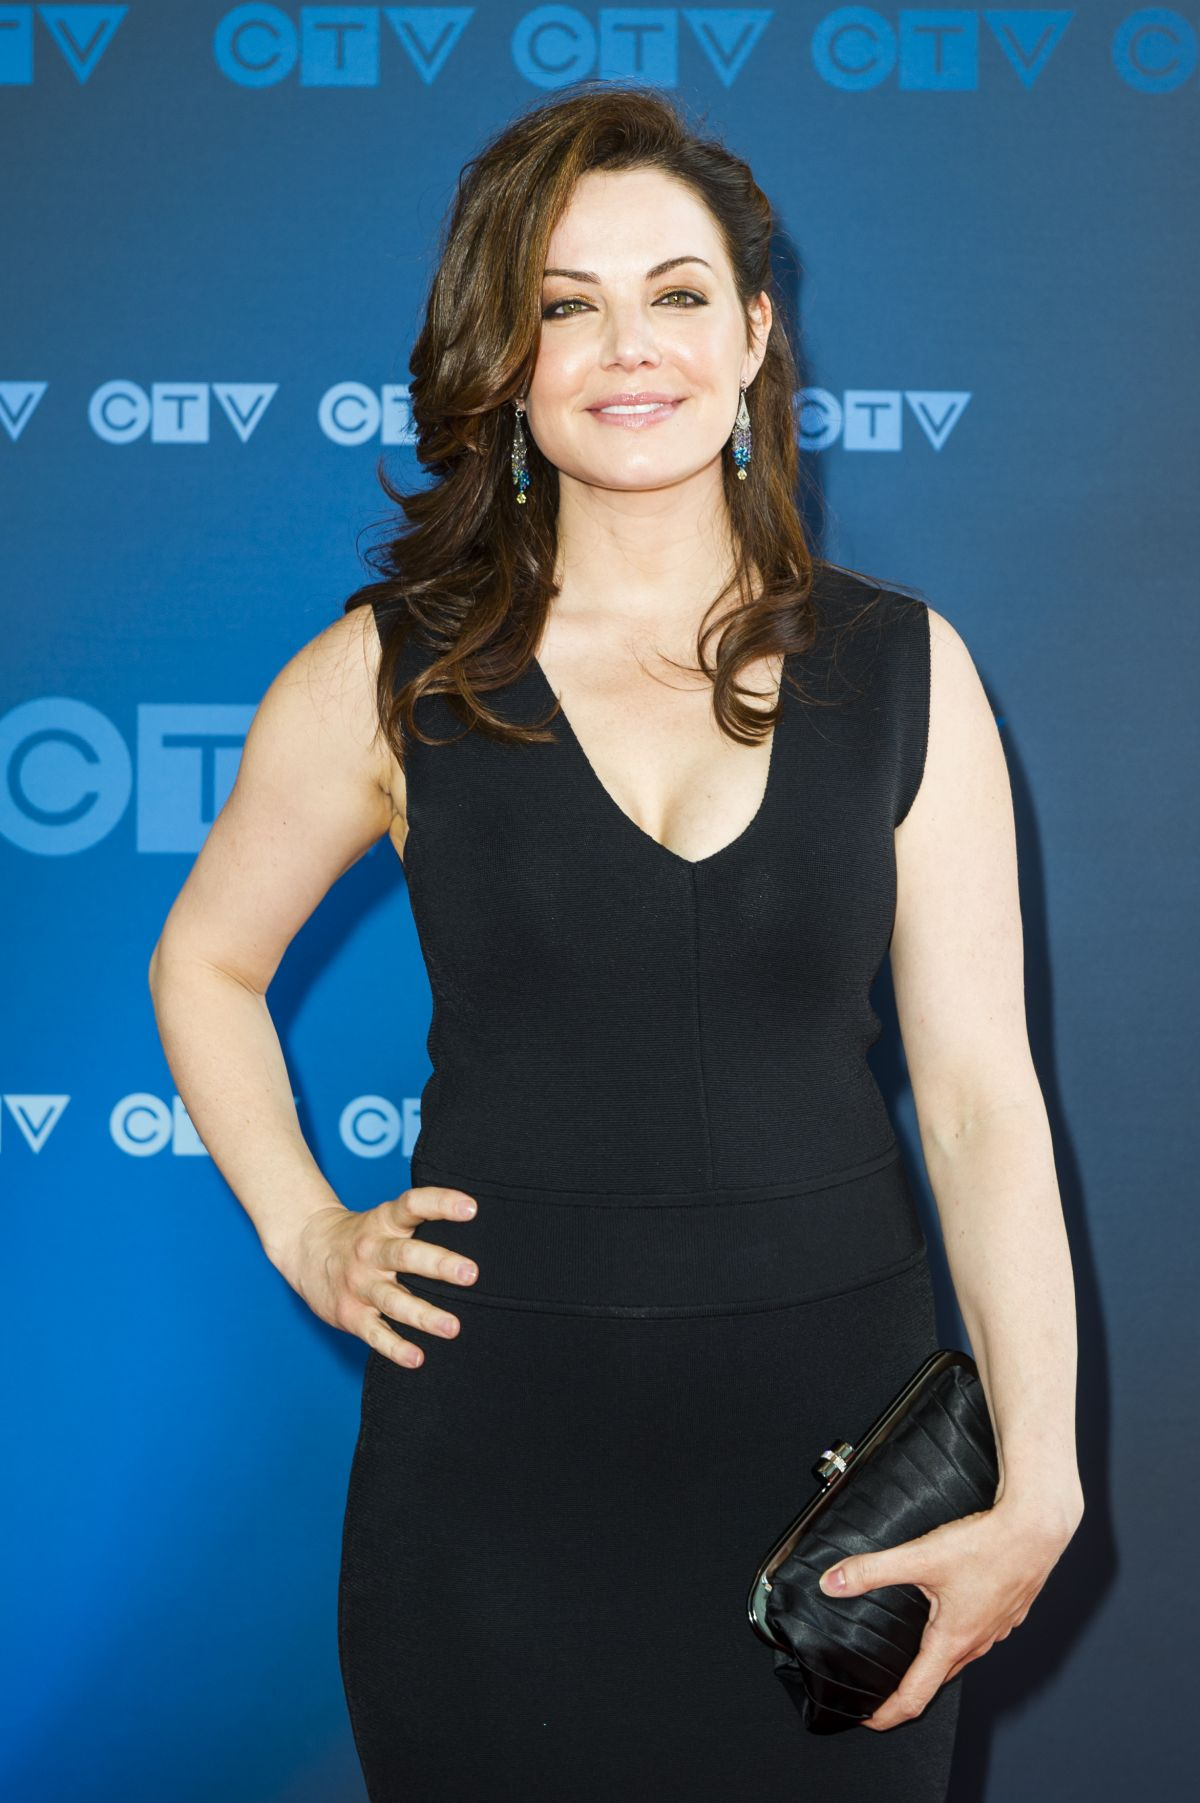 ERICA DURANCE at CTV Upfront in Toronto